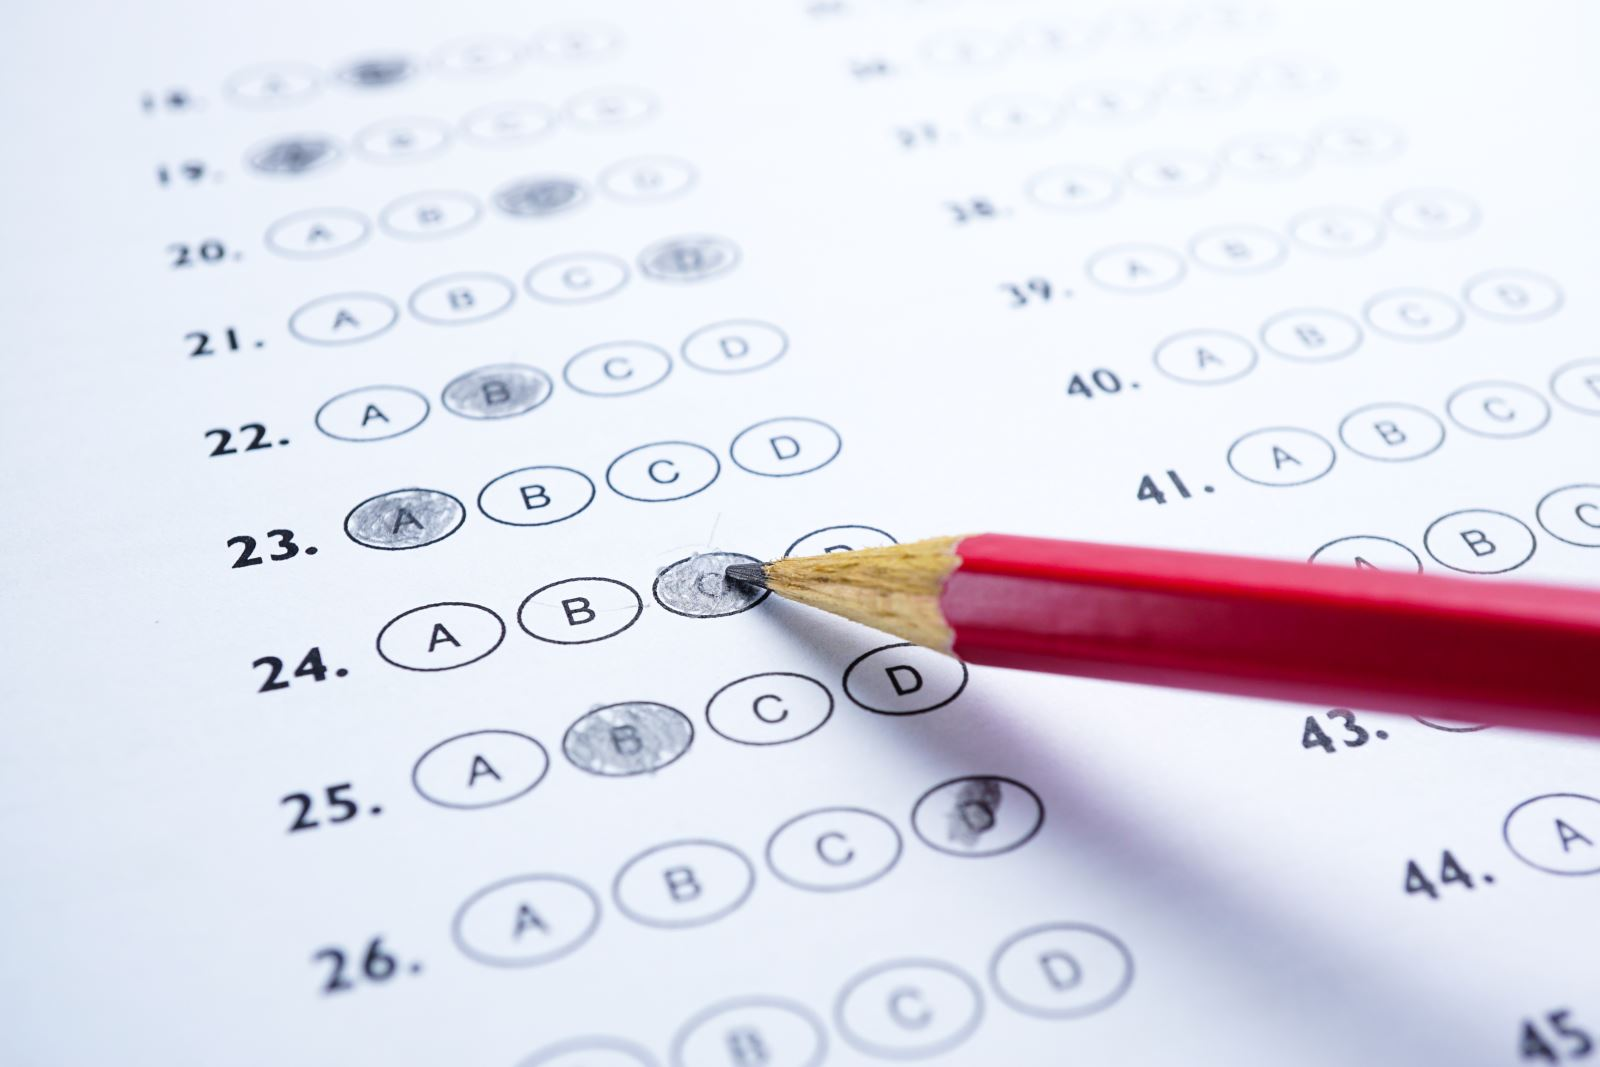 scantron test sheet with pencil filling in bubble